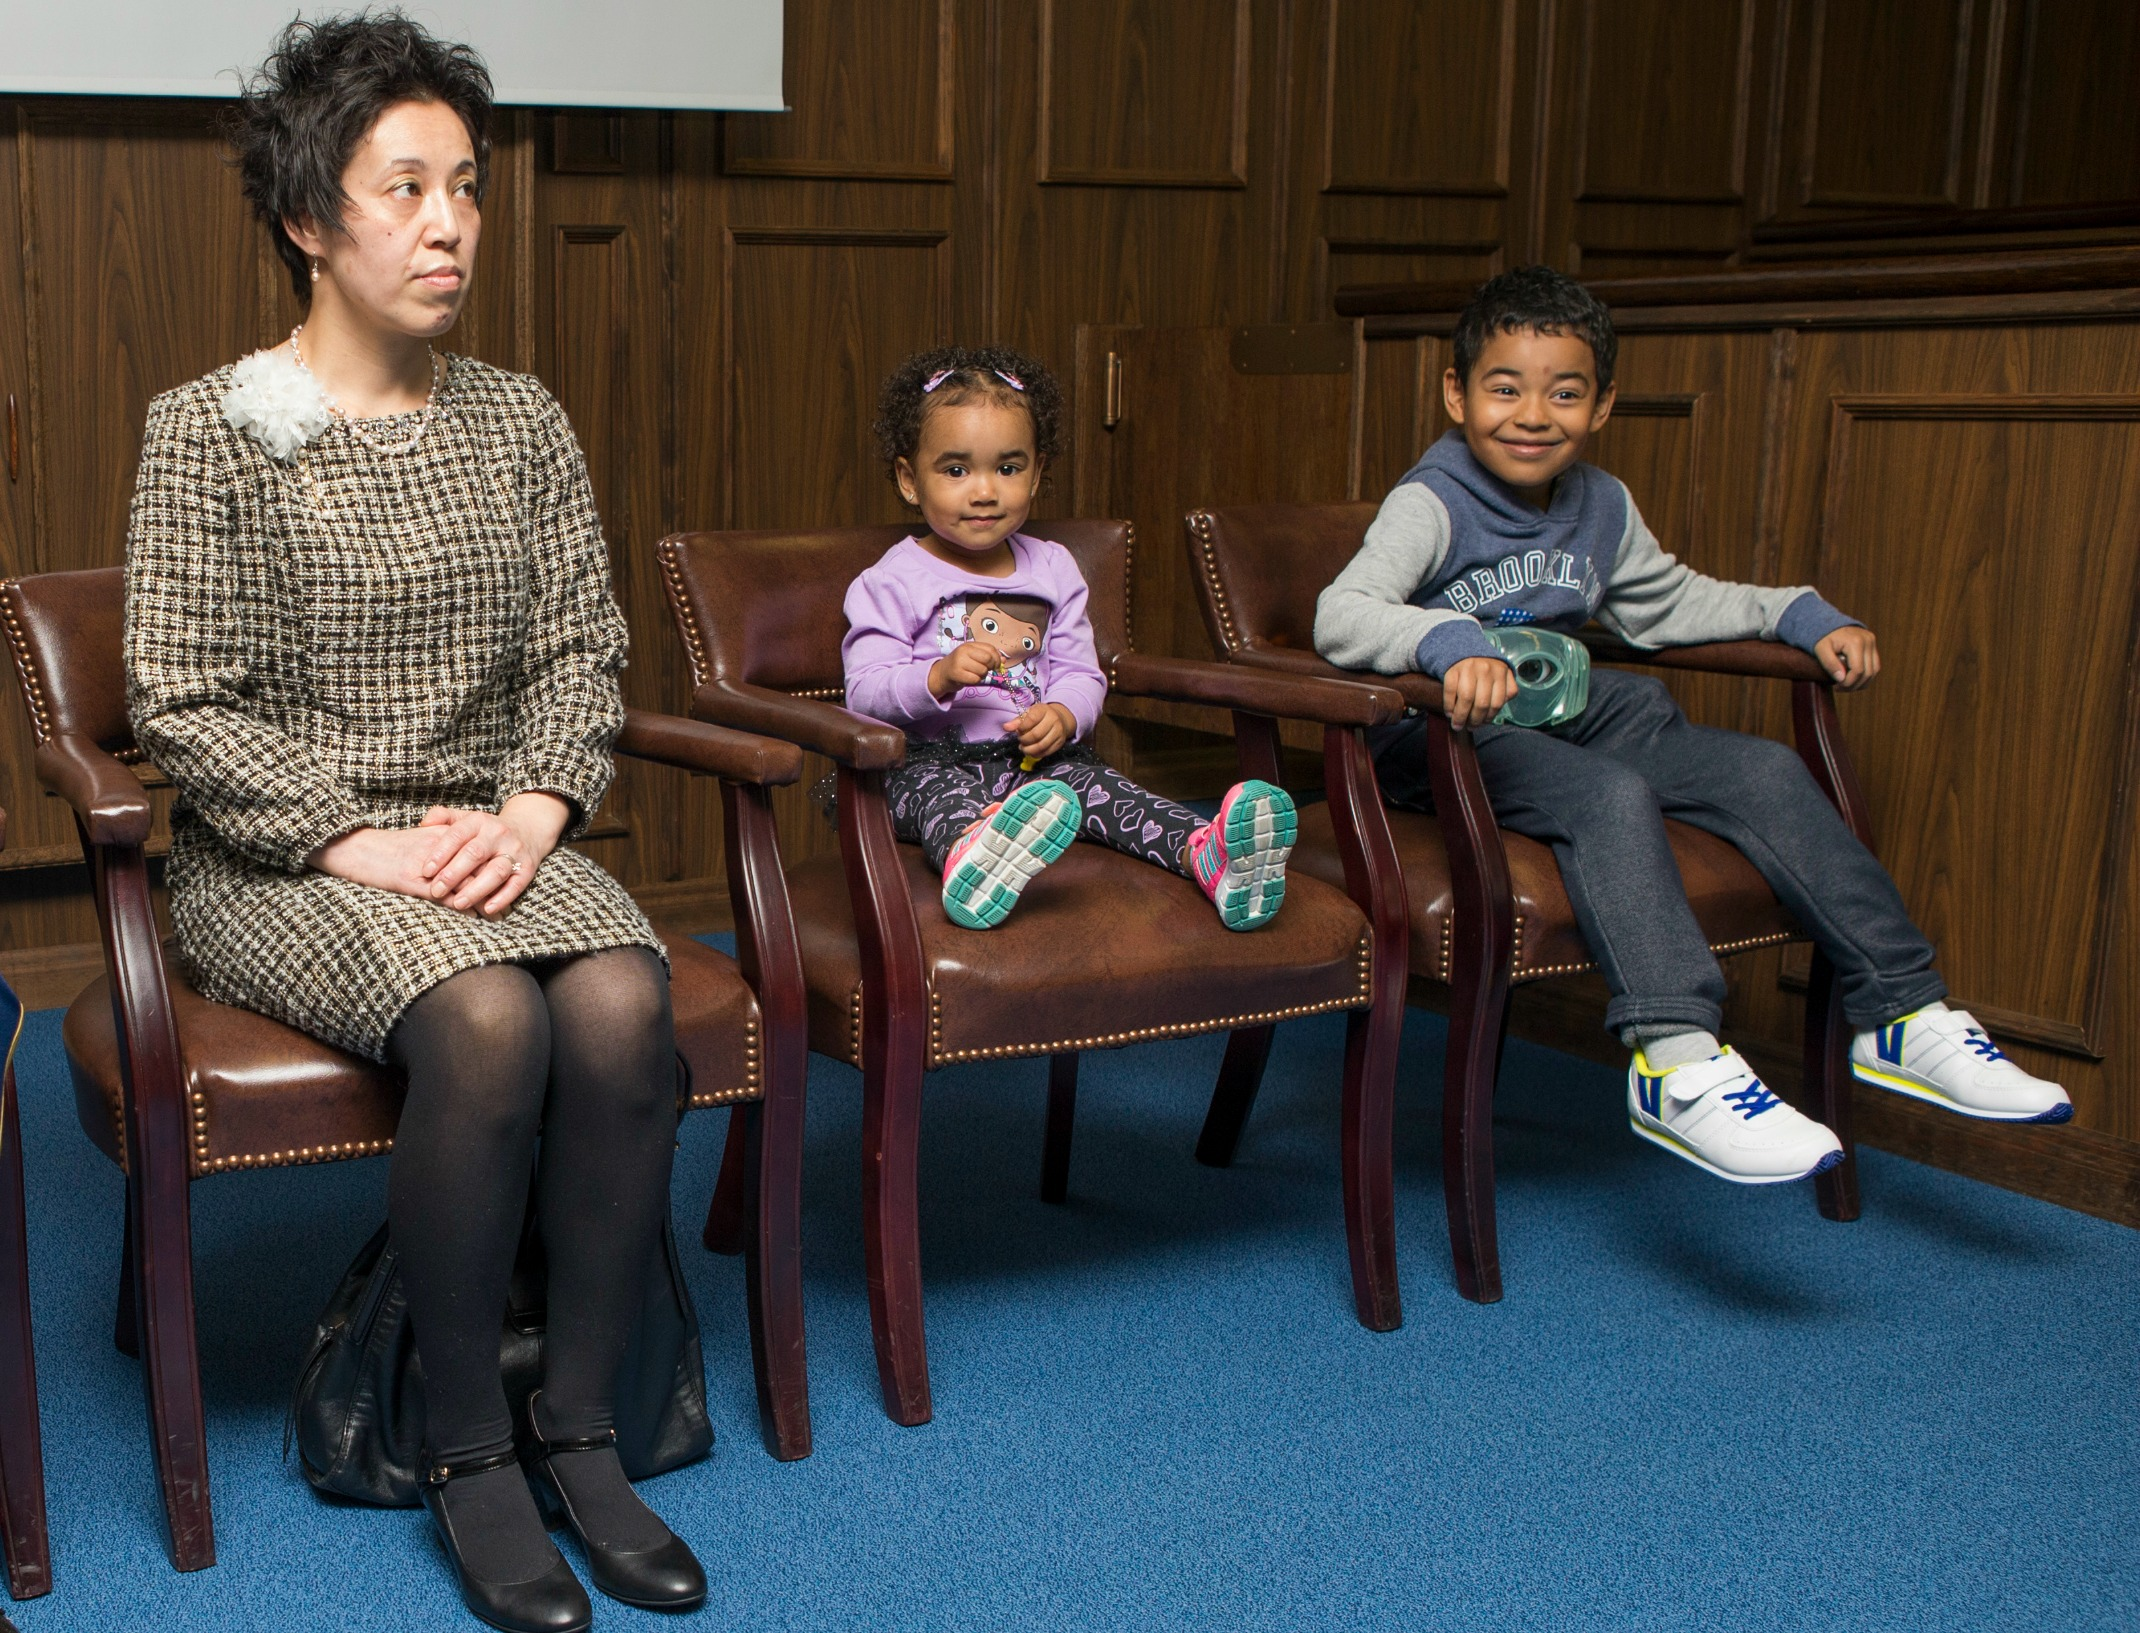 Jury Duty: How Can an LA Parent Cope with Jury Duty and Kids